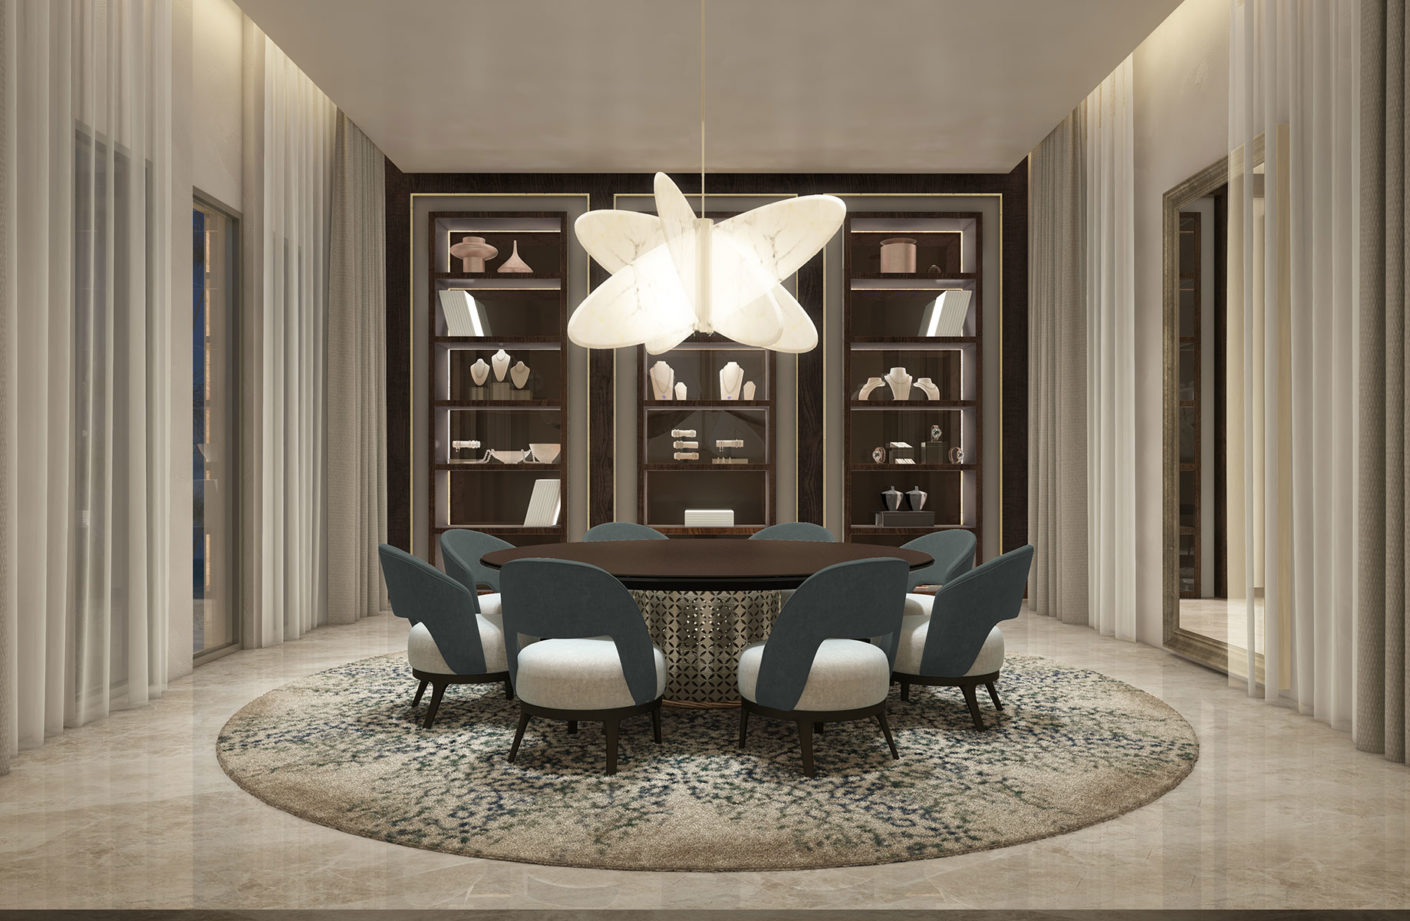 Dubai Interior Designers: The Top 10 Designers You Should Know About dubai interior designers Dubai Interior Designers: The Top 10 Designers You Should Know About Al Khan Palace Private Dining 03 6col 1410x921 1